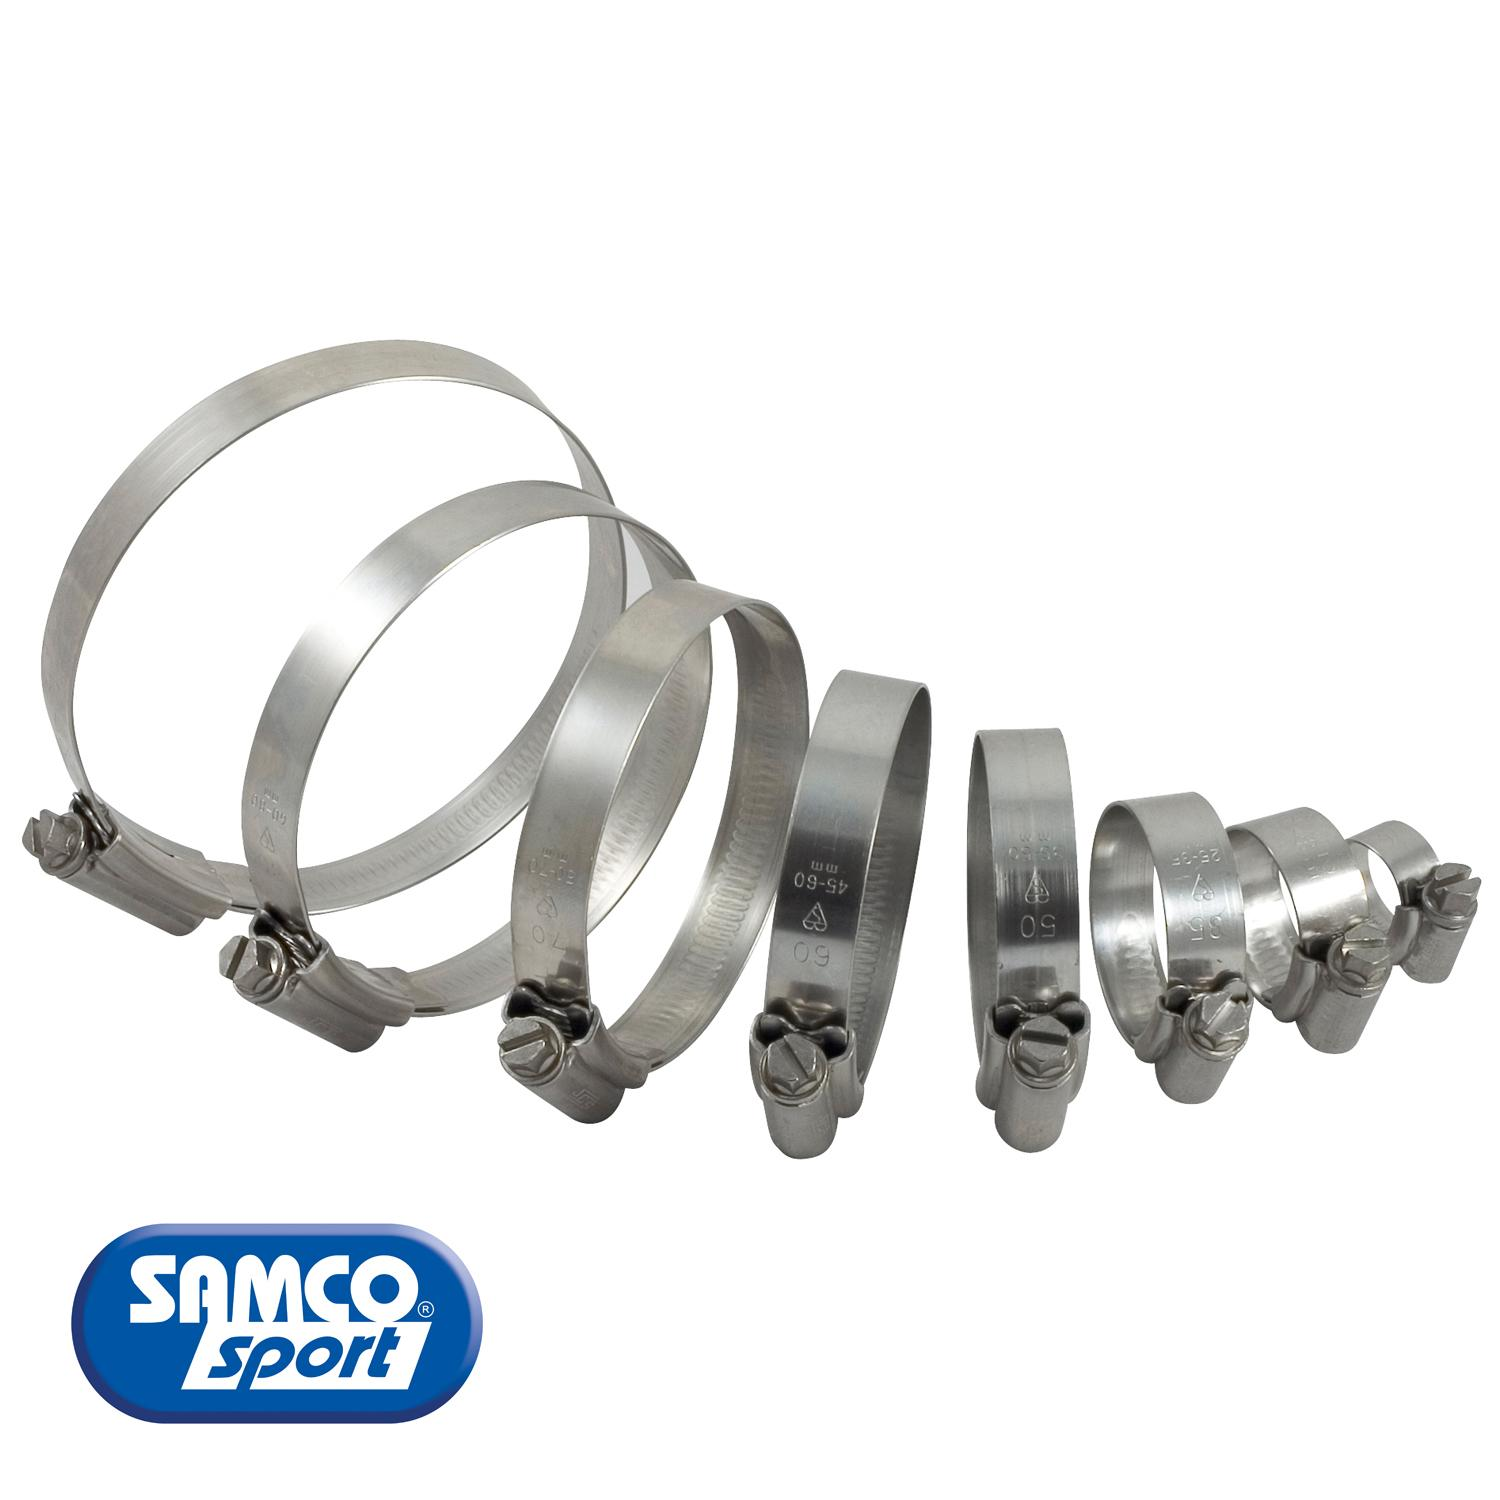 Samco Clip Kit For Triumph Spitfire 1500 (TCS-483/C)